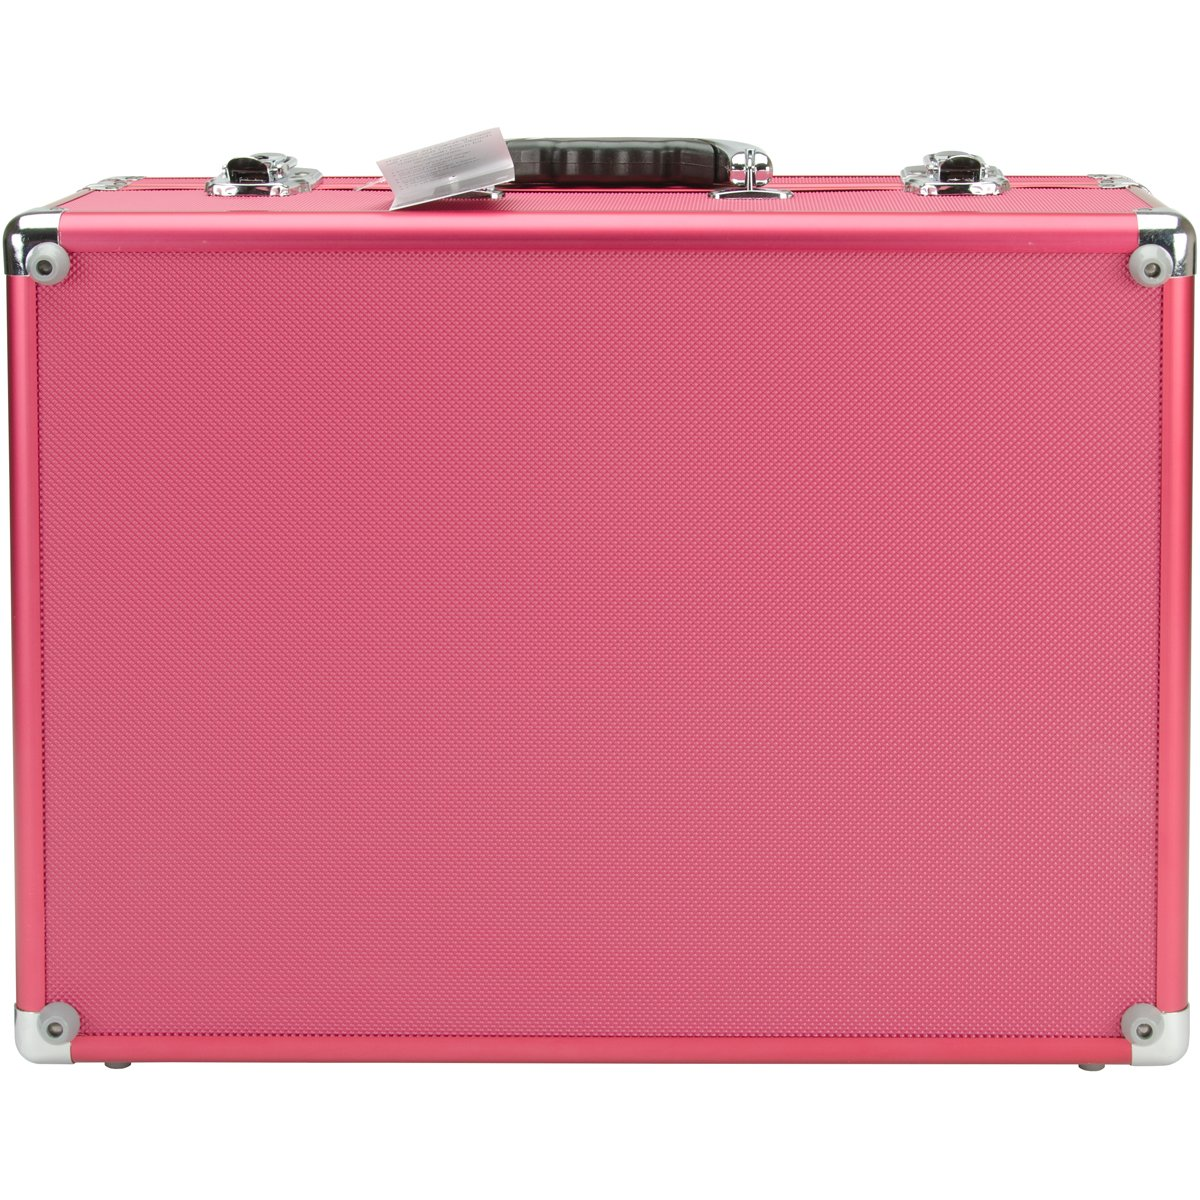 Copic Aluminum Carrying Case with Strap, 3.5 X 18 X 7 inches, Holds 358 Markers, Red (IICASE-RED)